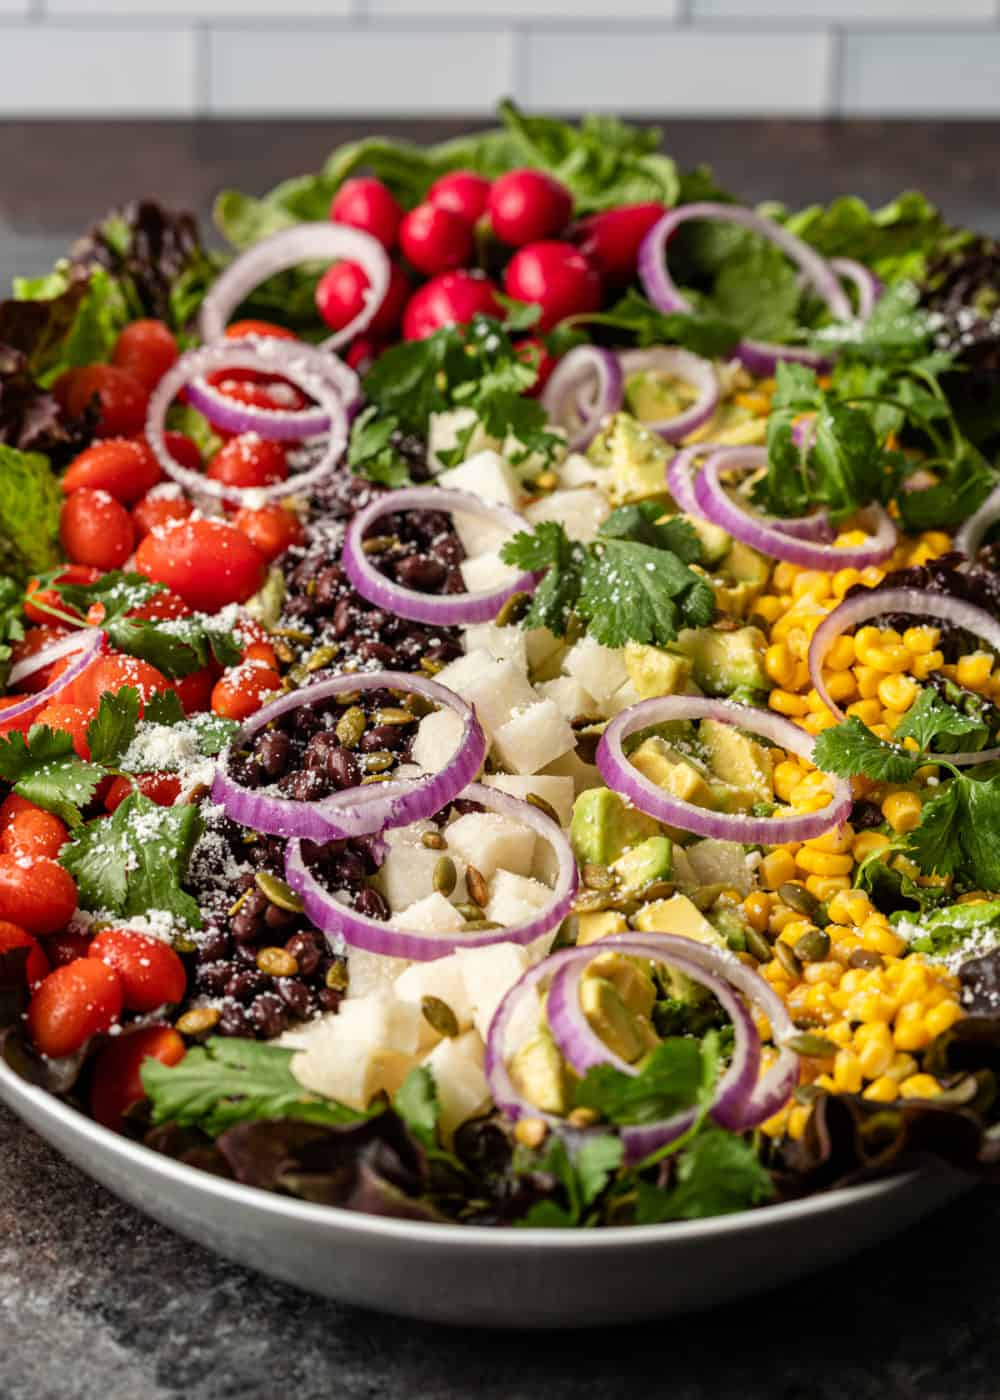 beautiful Mexican salad presented in large white serving bowl